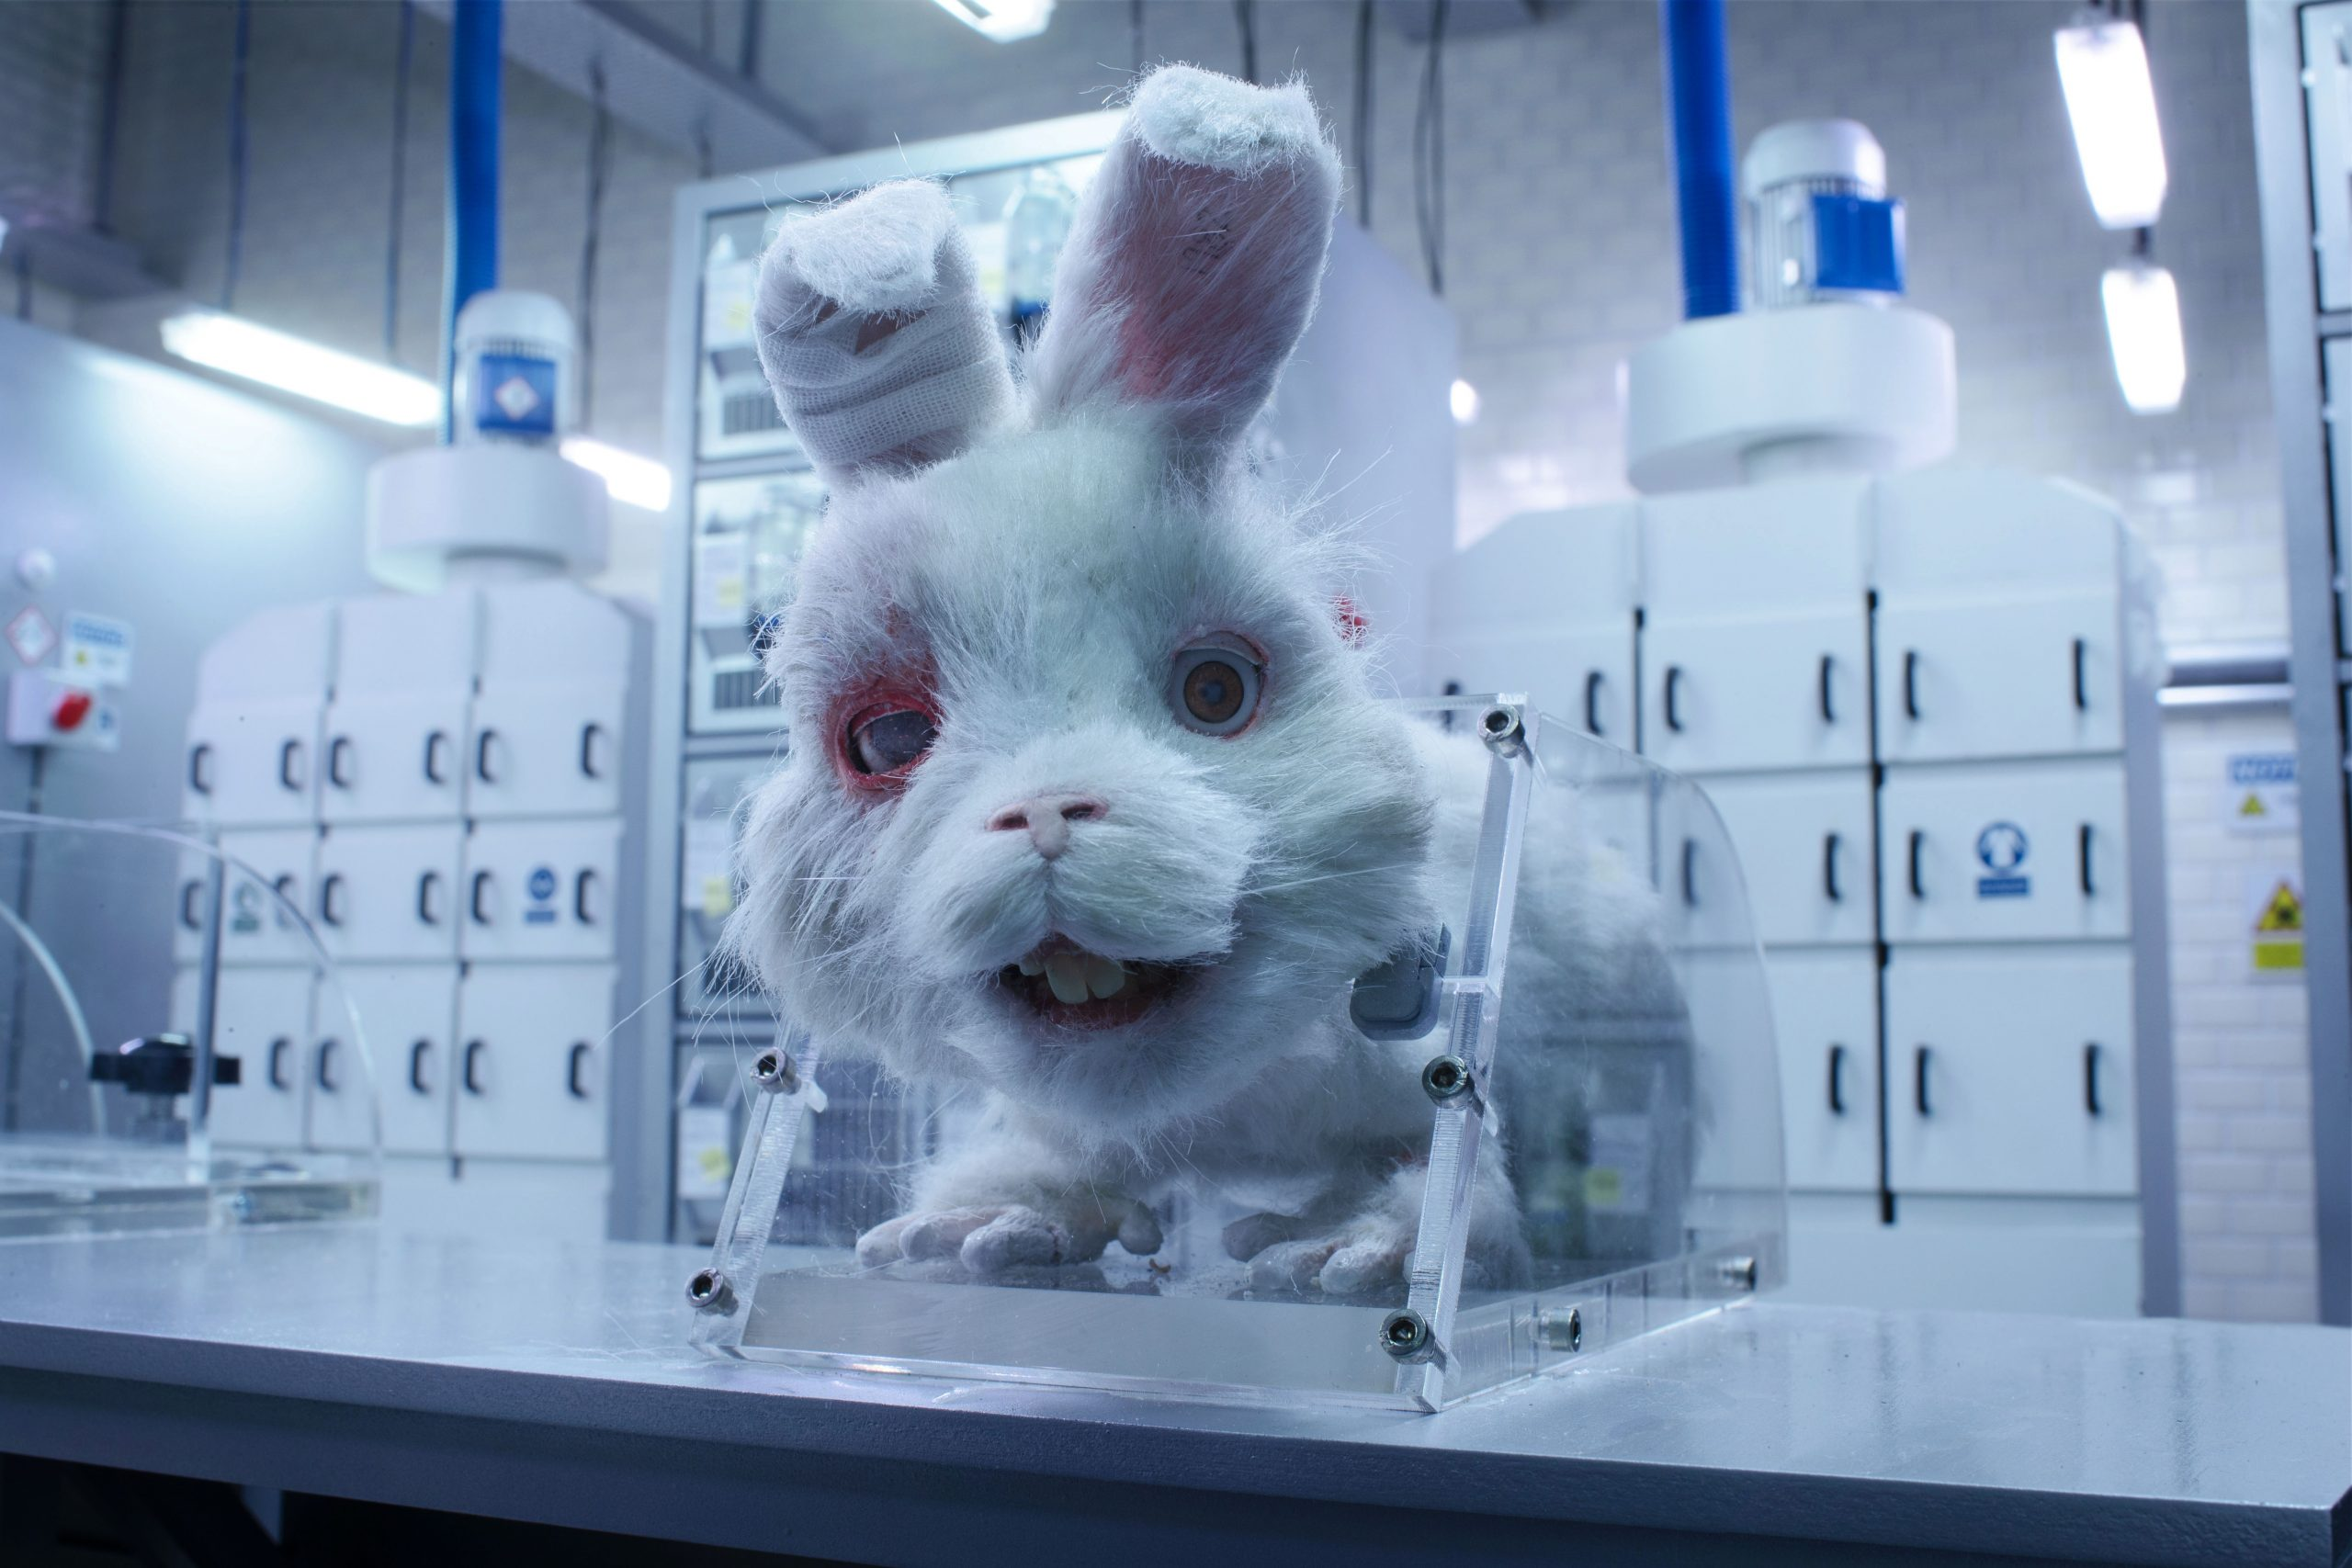 'Save Ralph', an animated short film, drops bombs on animal testing for cosmetic products, finds support from Unilever